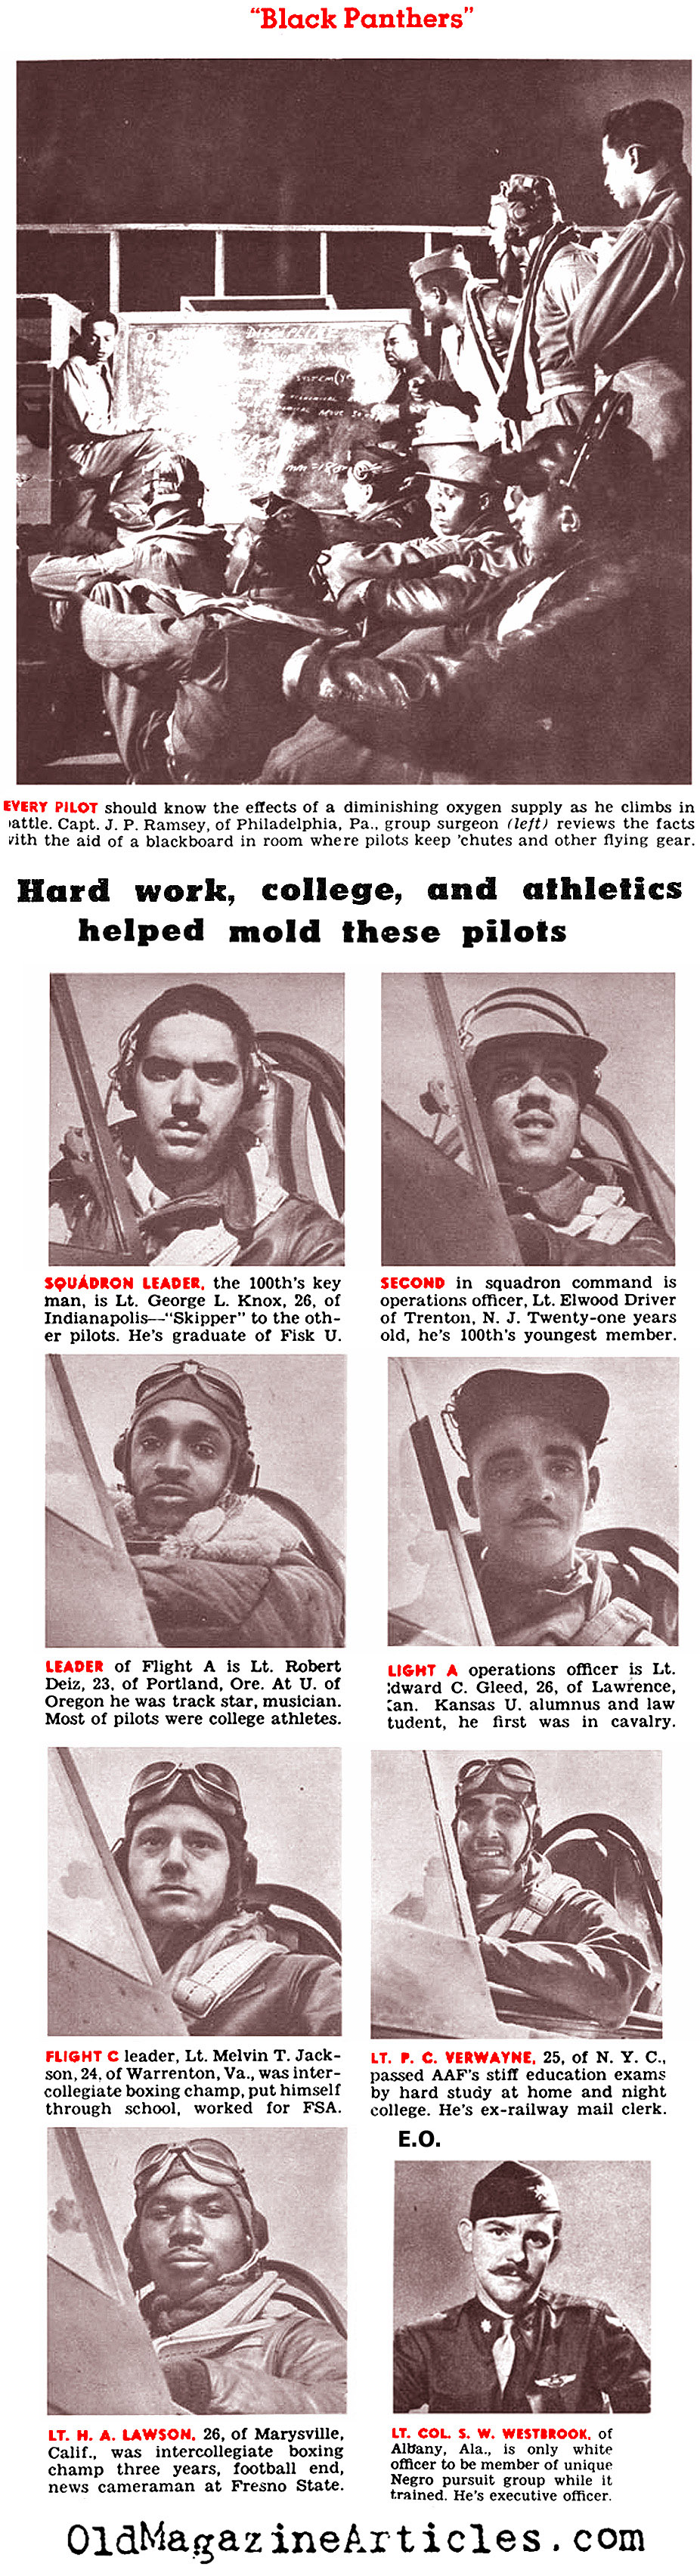 African-American Fighter Pilots (Click Magazine, 1943)